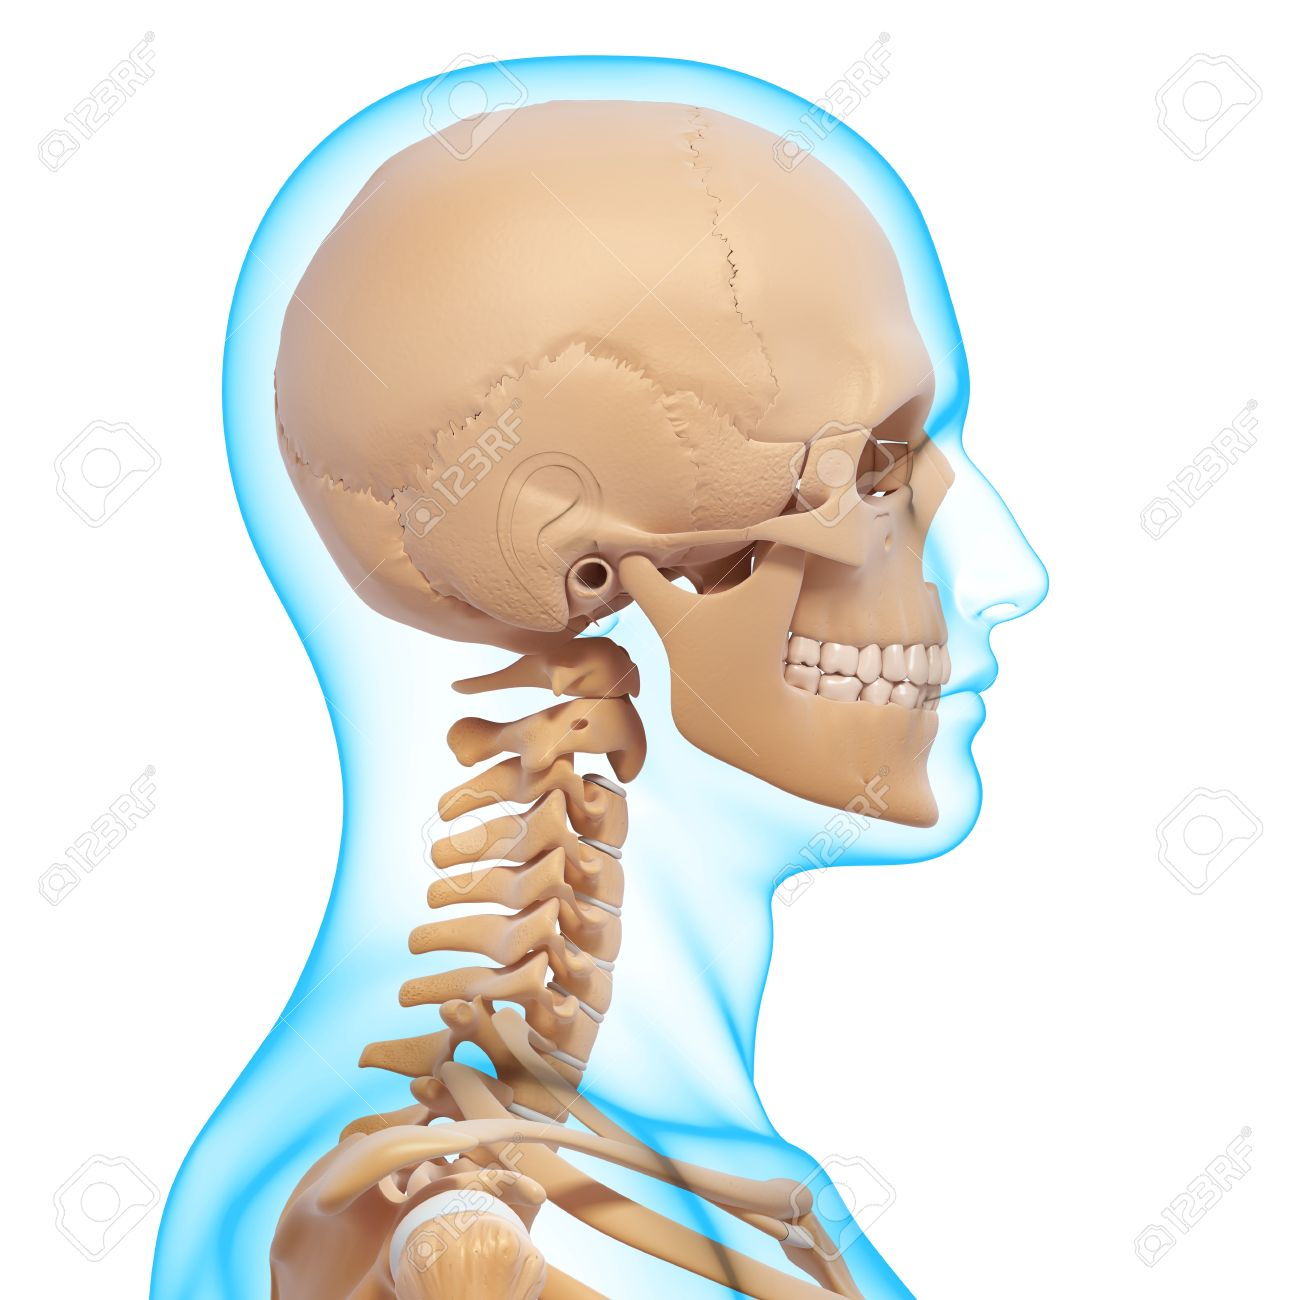 Side View Of Human Skeleton Of Head Stock Photo Picture And Royalty